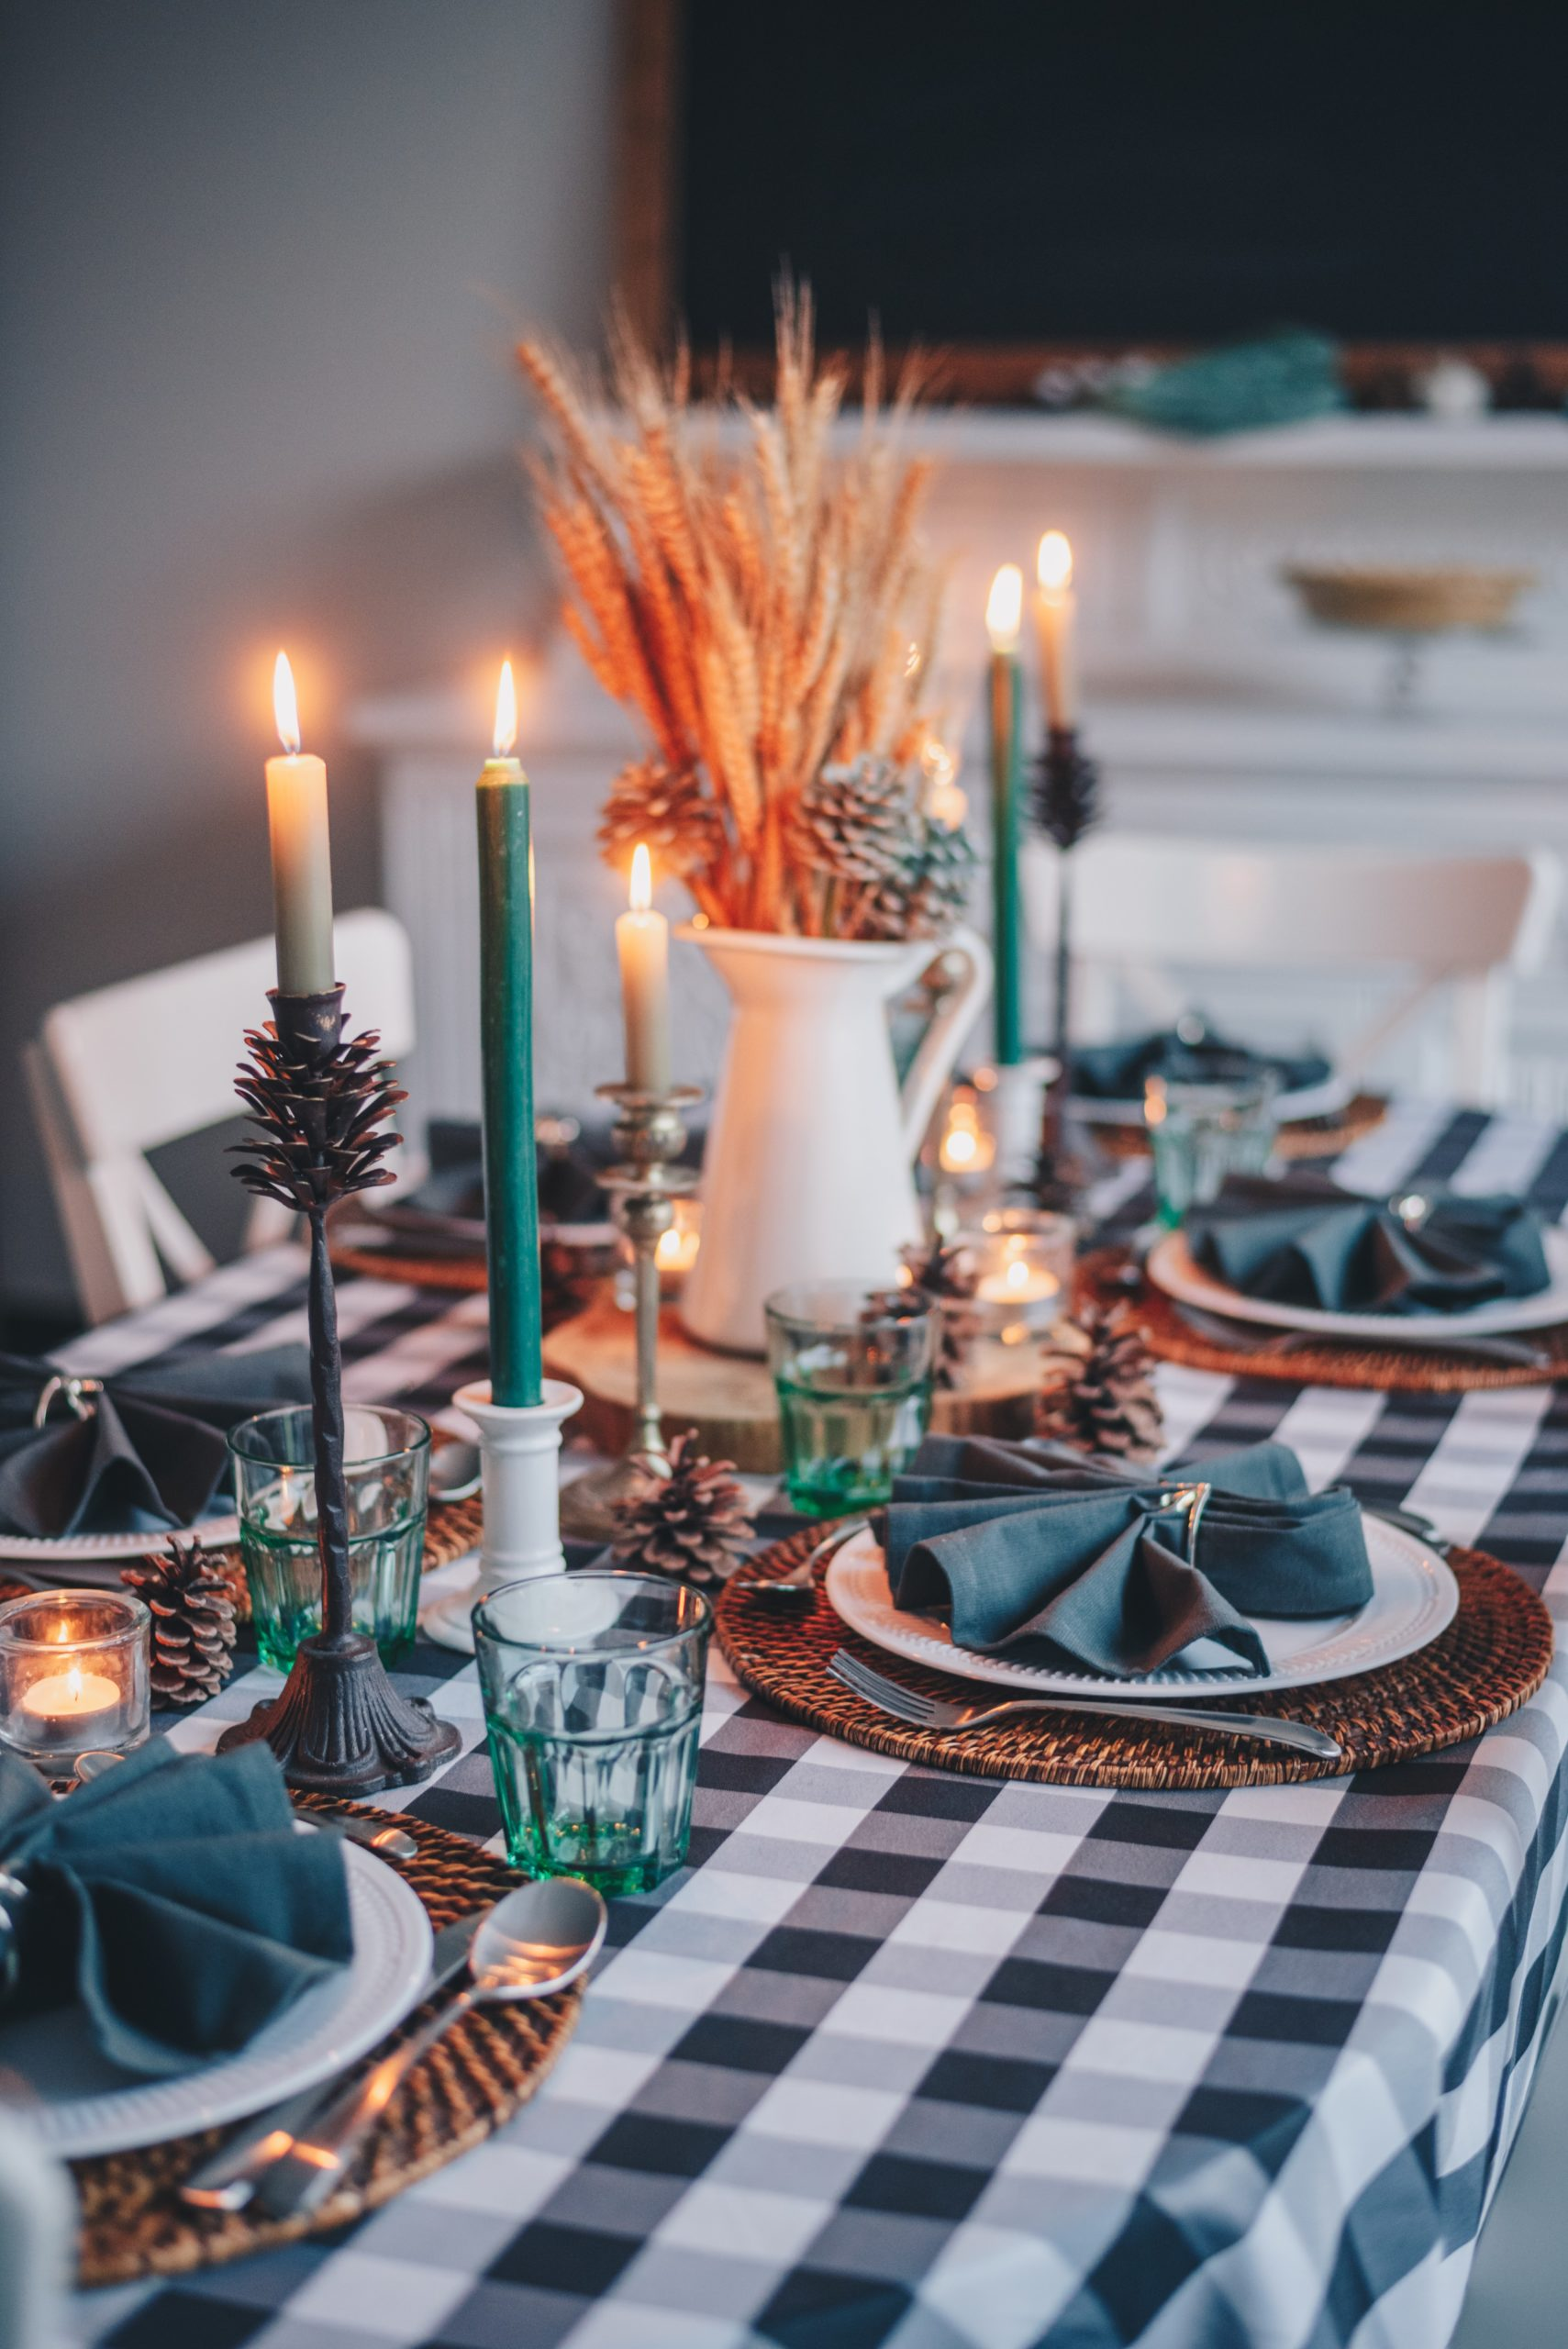 black and white themed Christmas table setting